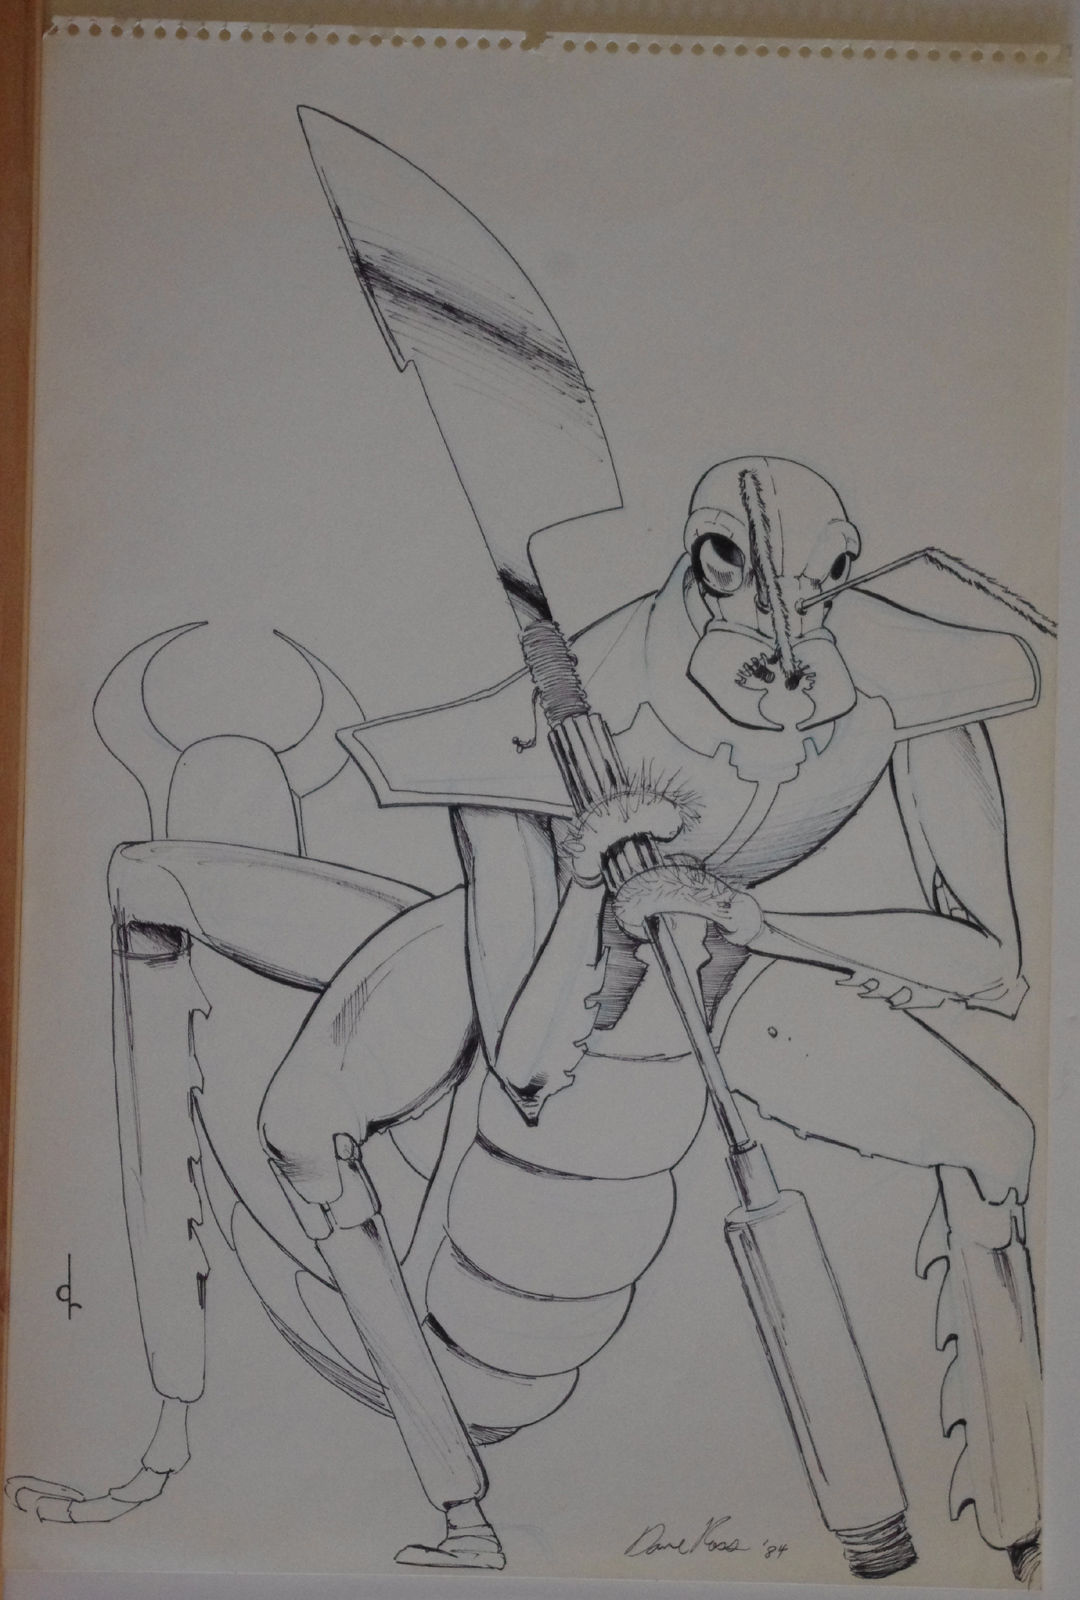 DAVID ROSS original art, Signed, INSECT WARRIOR,12x18, Sketch, more art in store